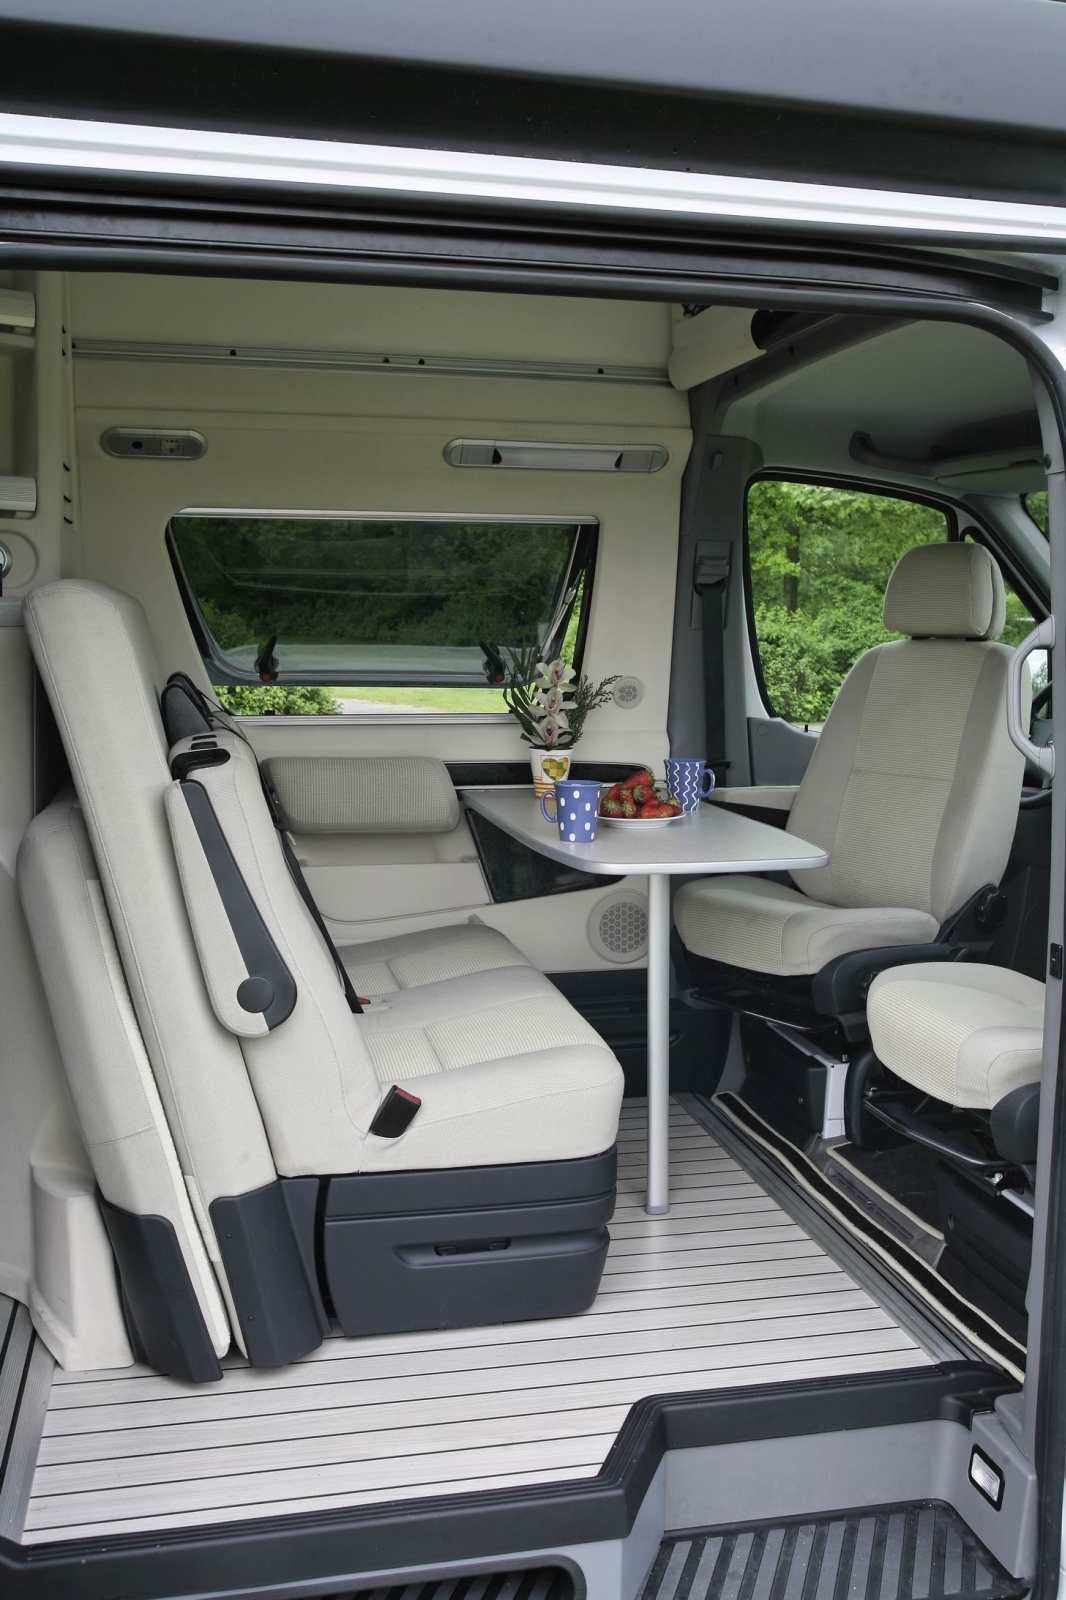 Interior Of The Very Plush Westfalia James Cook Mercedes Sprinter Rv Mercedes Sprinter Camper Van Campervan Interior Mercedes Camper Van